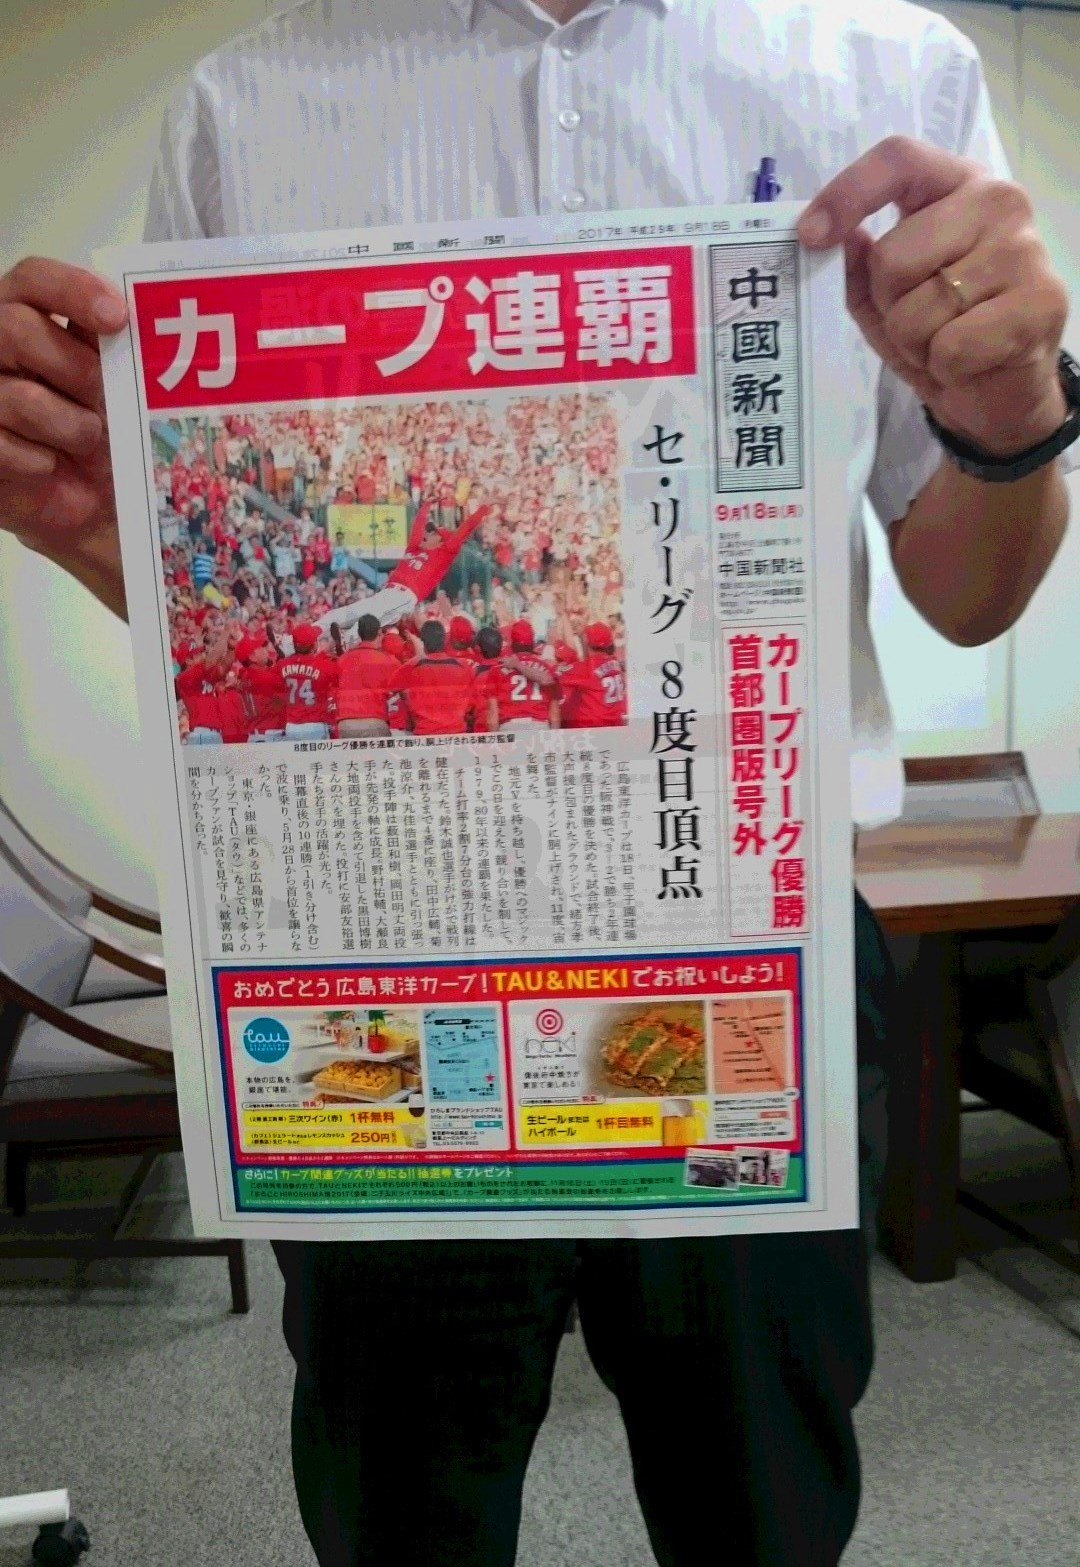 We get ... Chugoku Shimbun-sha metropolitan area version extra! We hold ... okonomiyaki restaurant campaign related to Hiroshima.